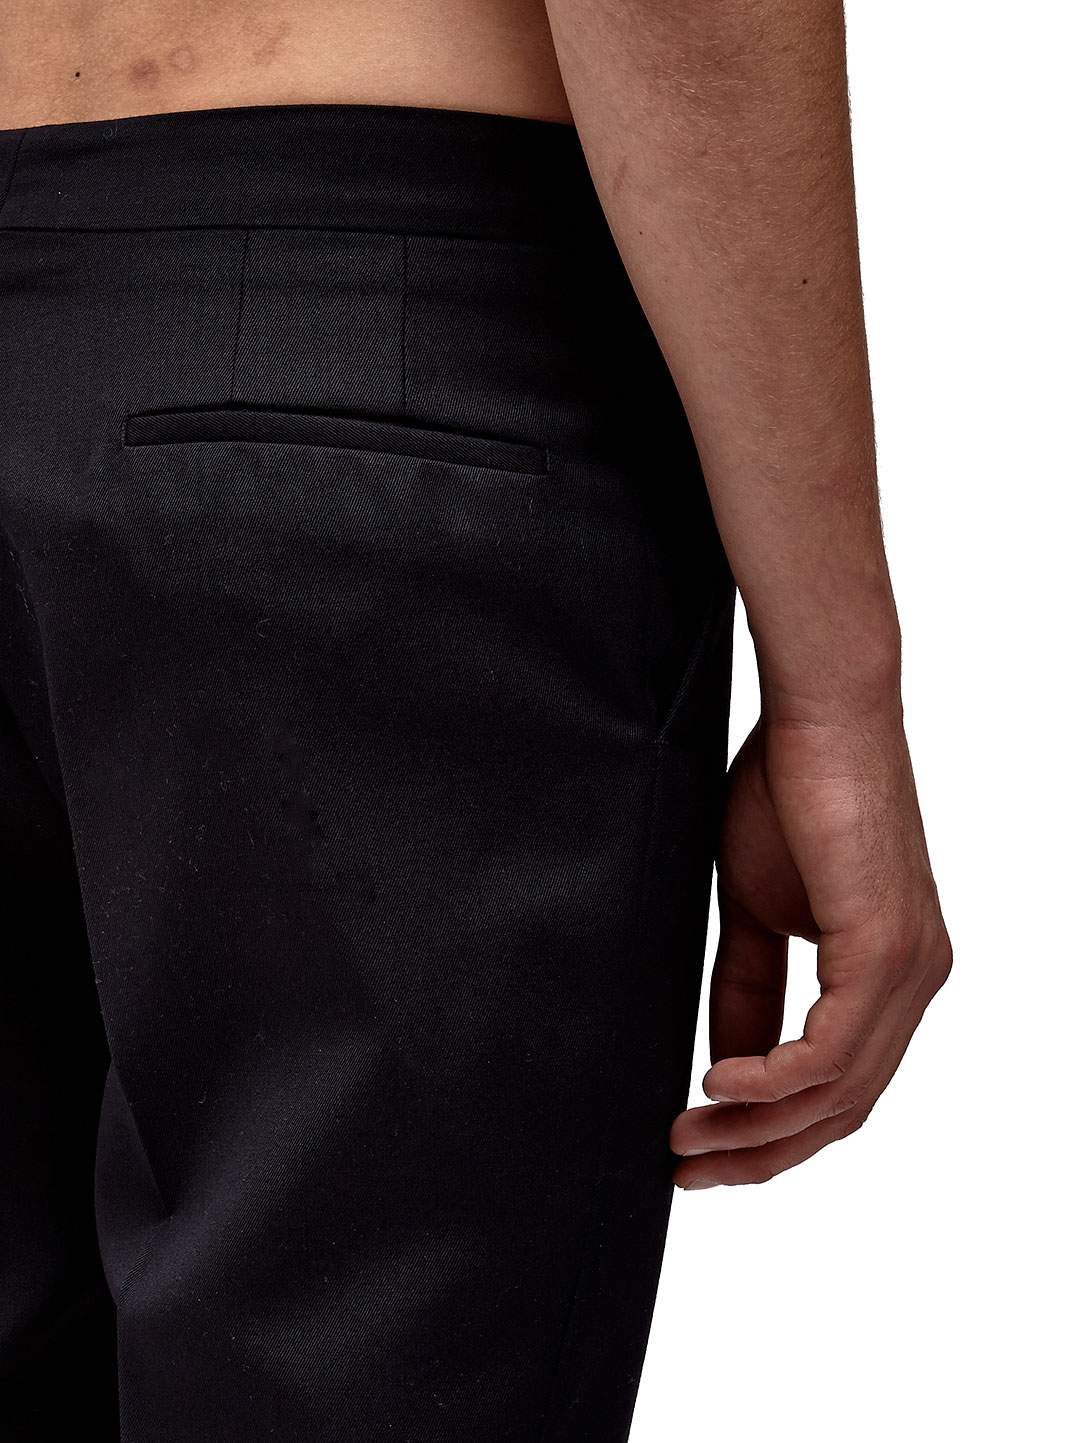 Raf simons / Sterling Ruby Mens Classic Fit Pants in Black ...